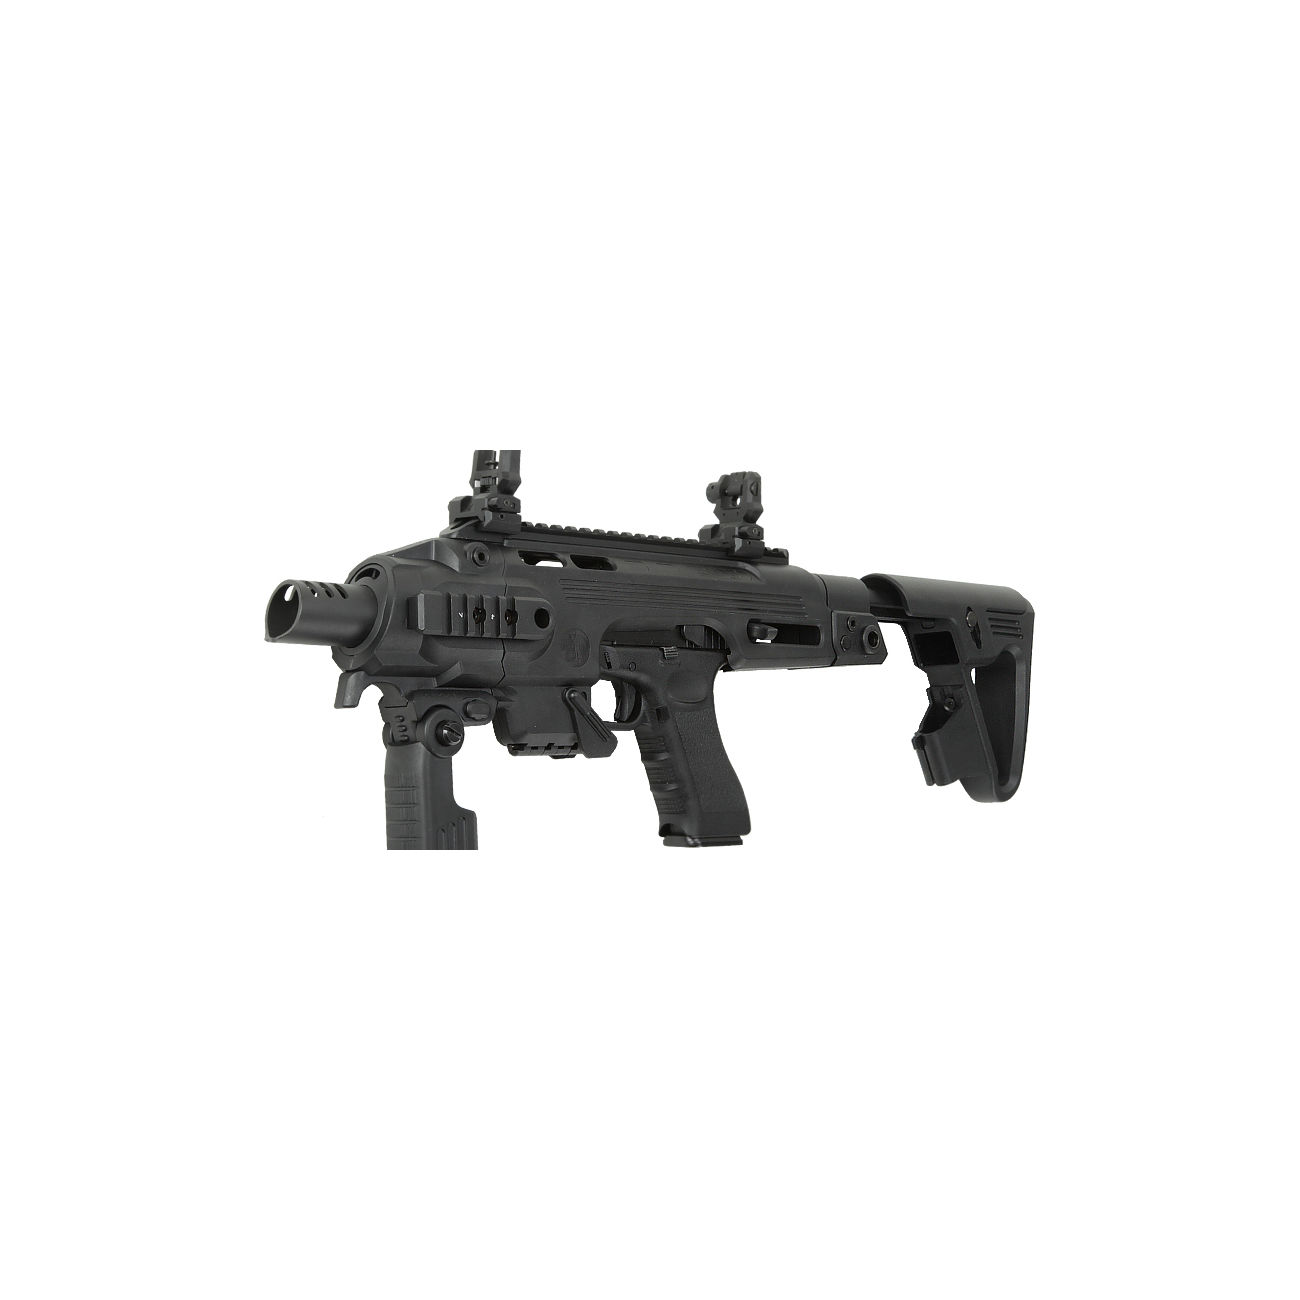 CAA Airsoft Division RONI Carbine Conversion Kit f. TM / KSC / WE G17 / G18C / G18 / G23F schwarz 0